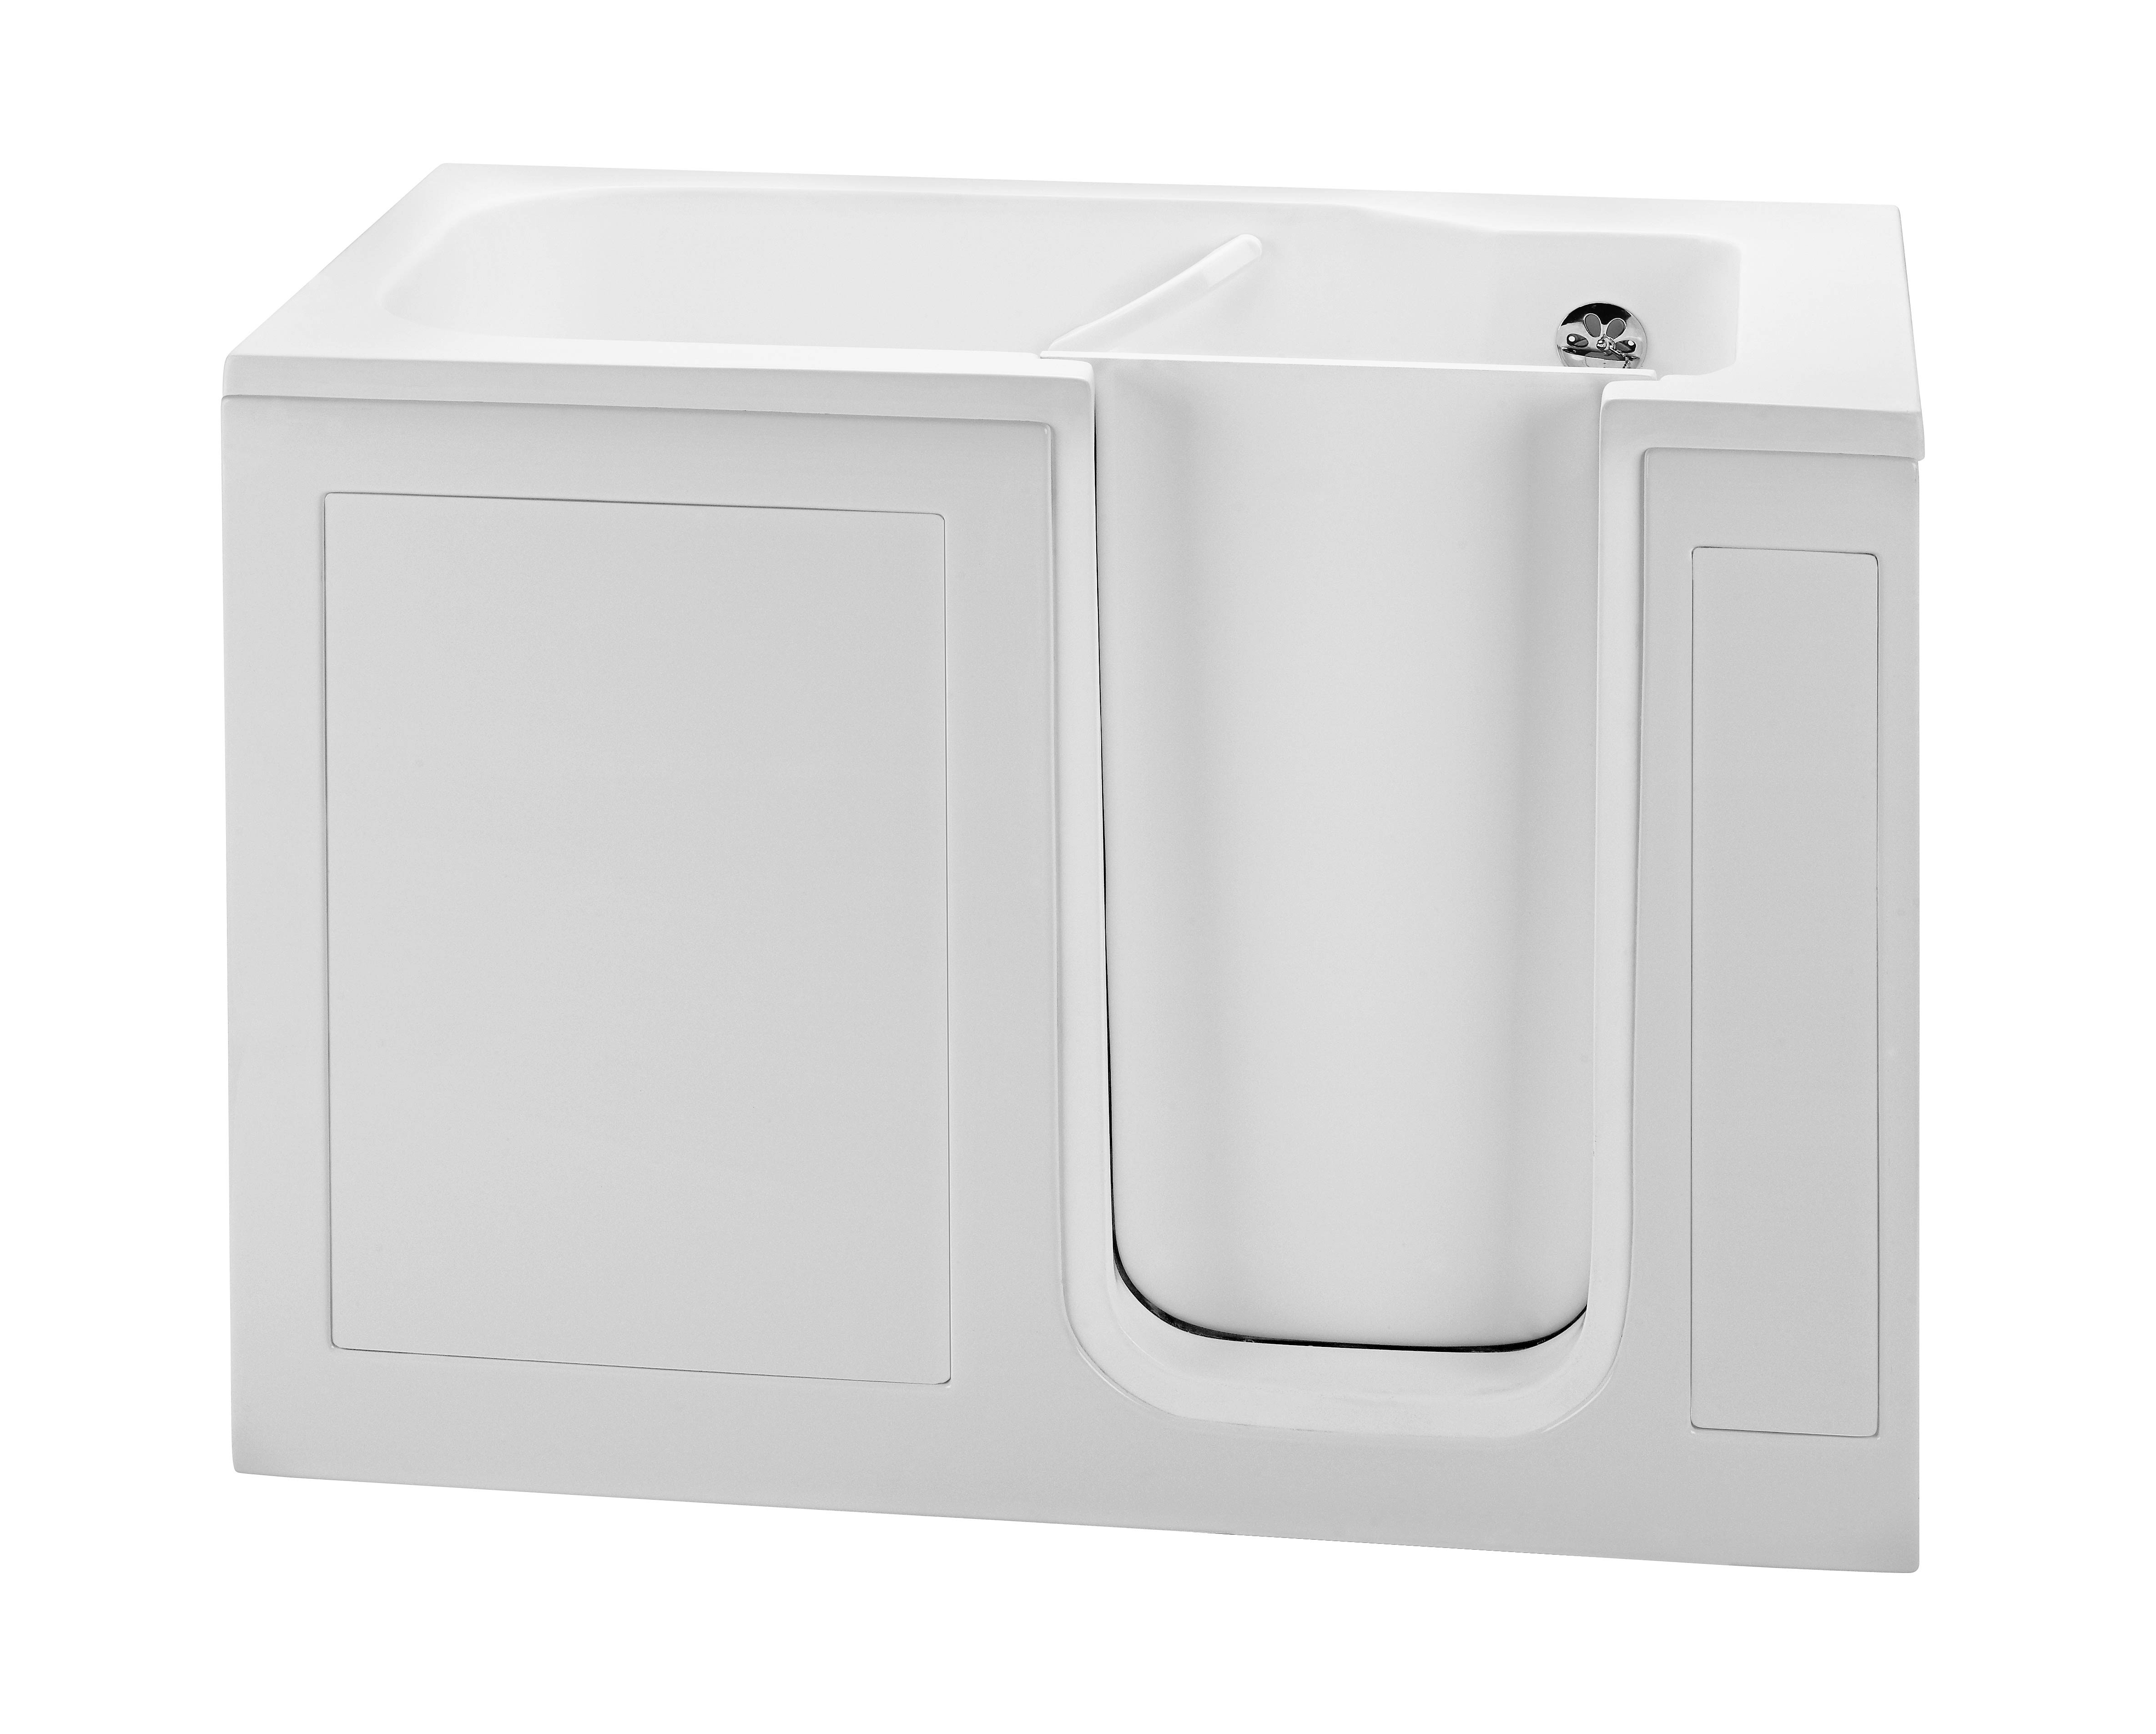 Reliance RWI5030S 51.5 Inch Walk in Soaking Bath with Valves